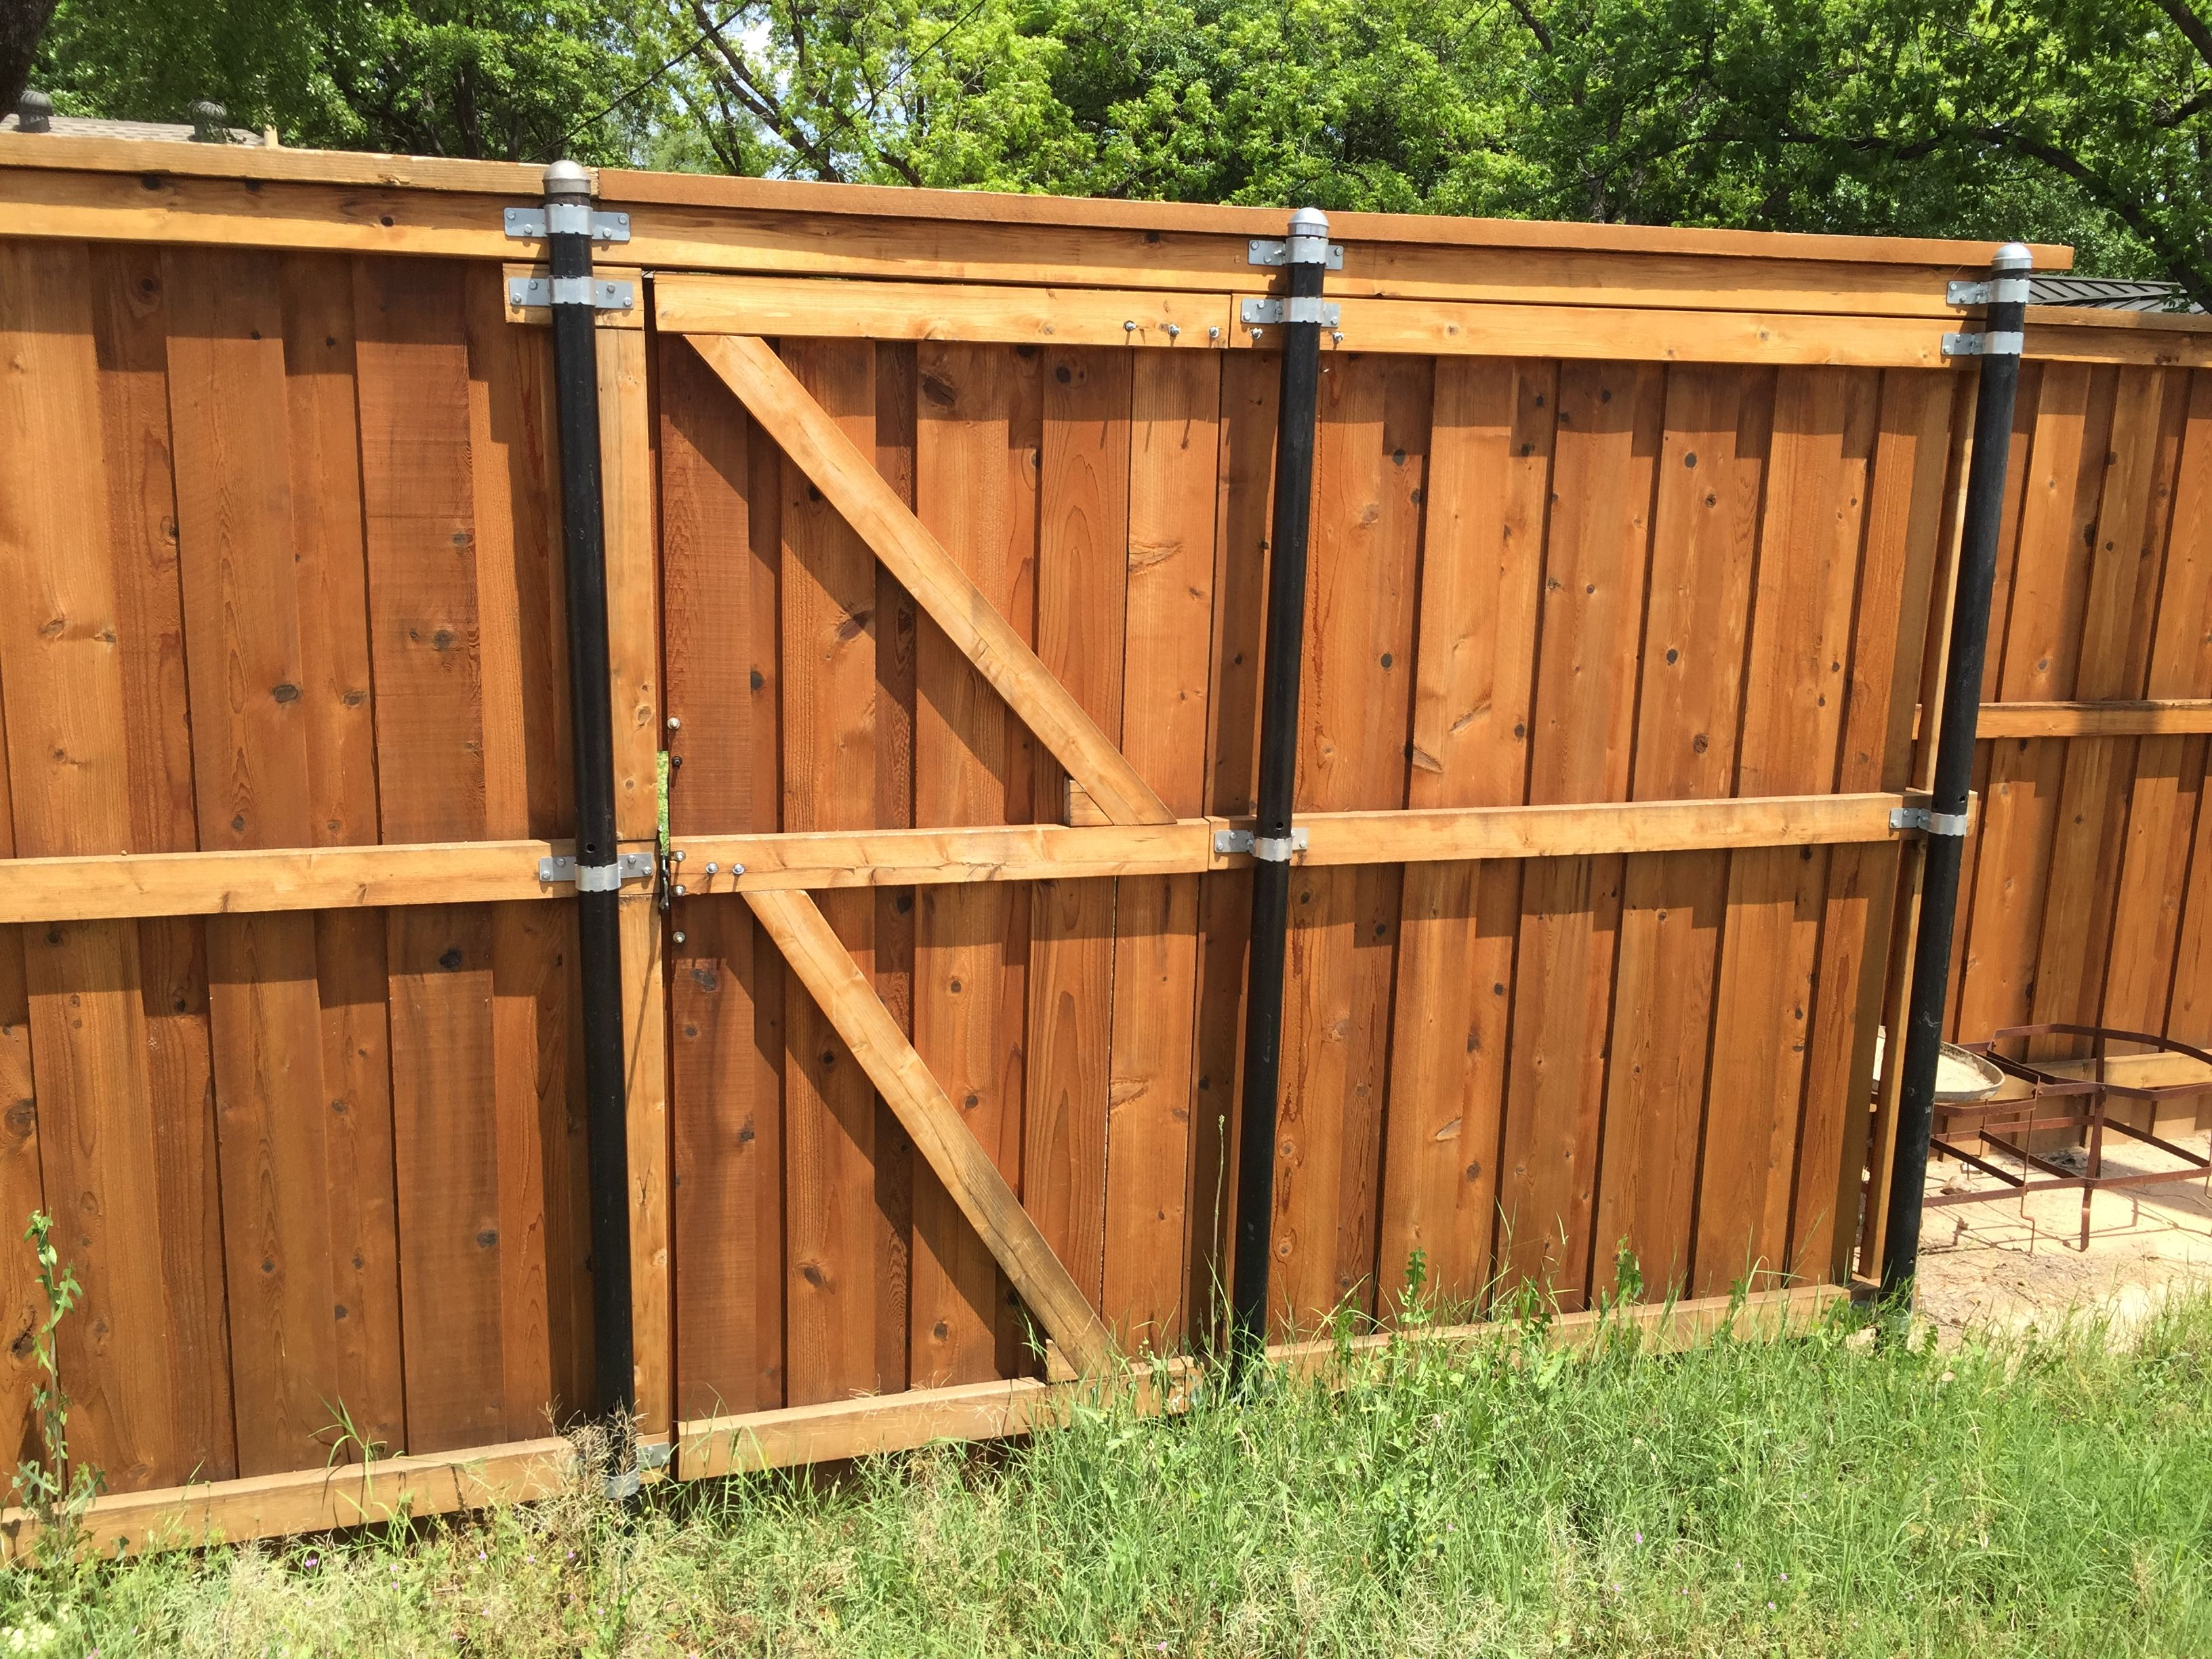 Stabilize Wood Fences With Metal Poles Wood Fence Stabilized